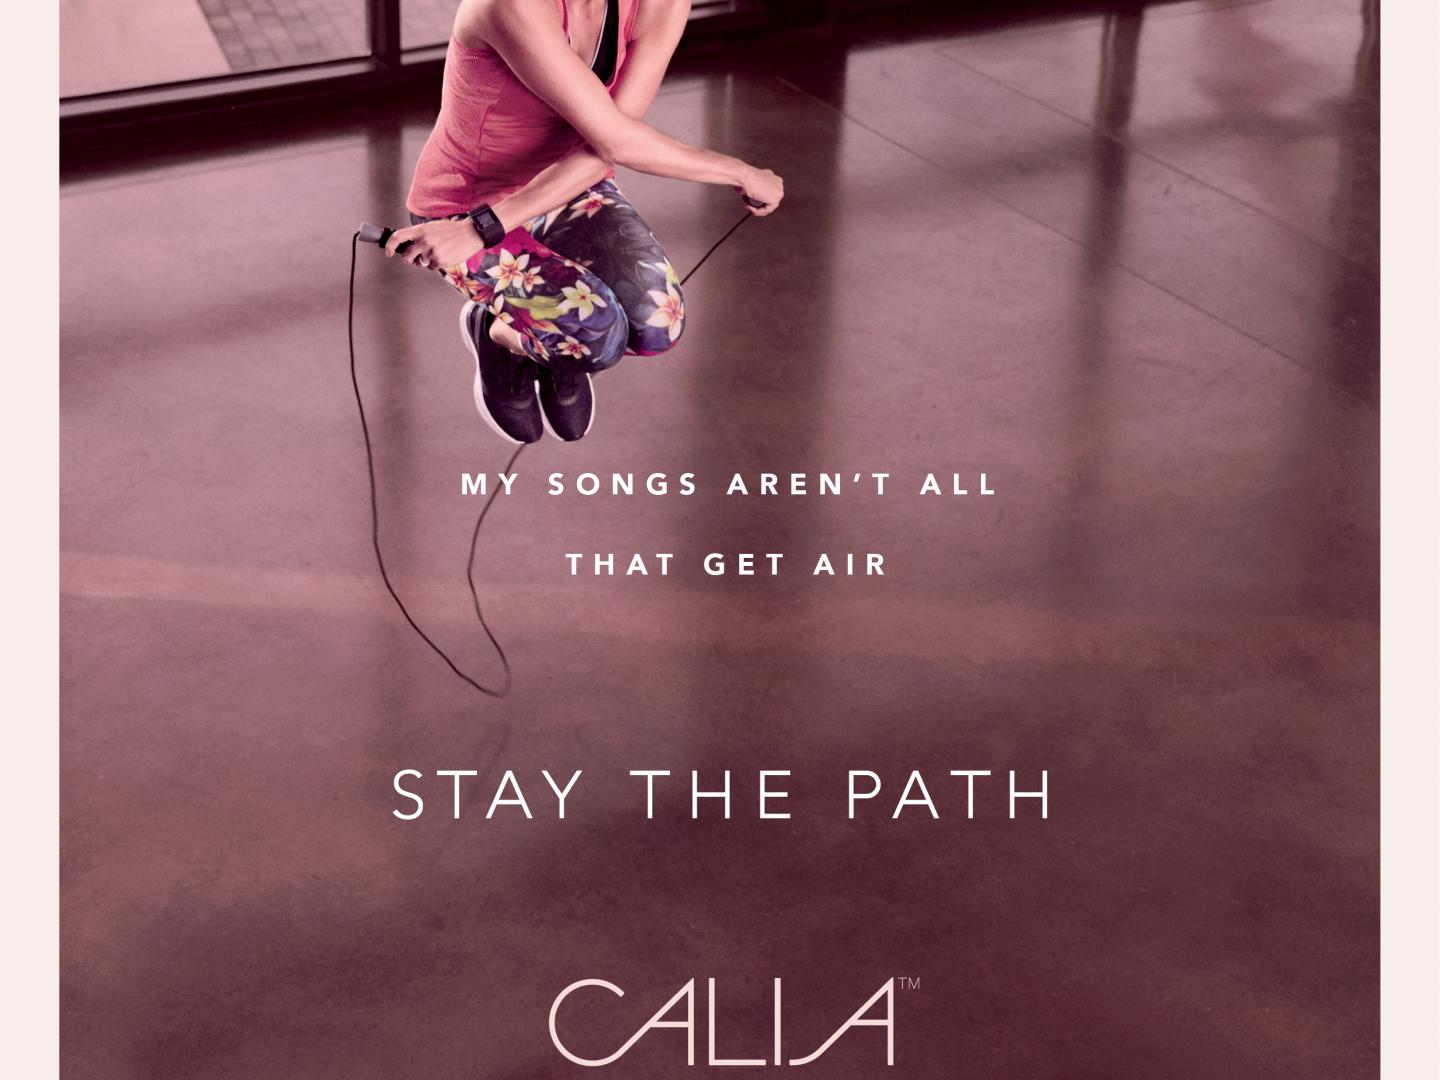 Image for CALIA by Carrie Underwood - Stay The Path